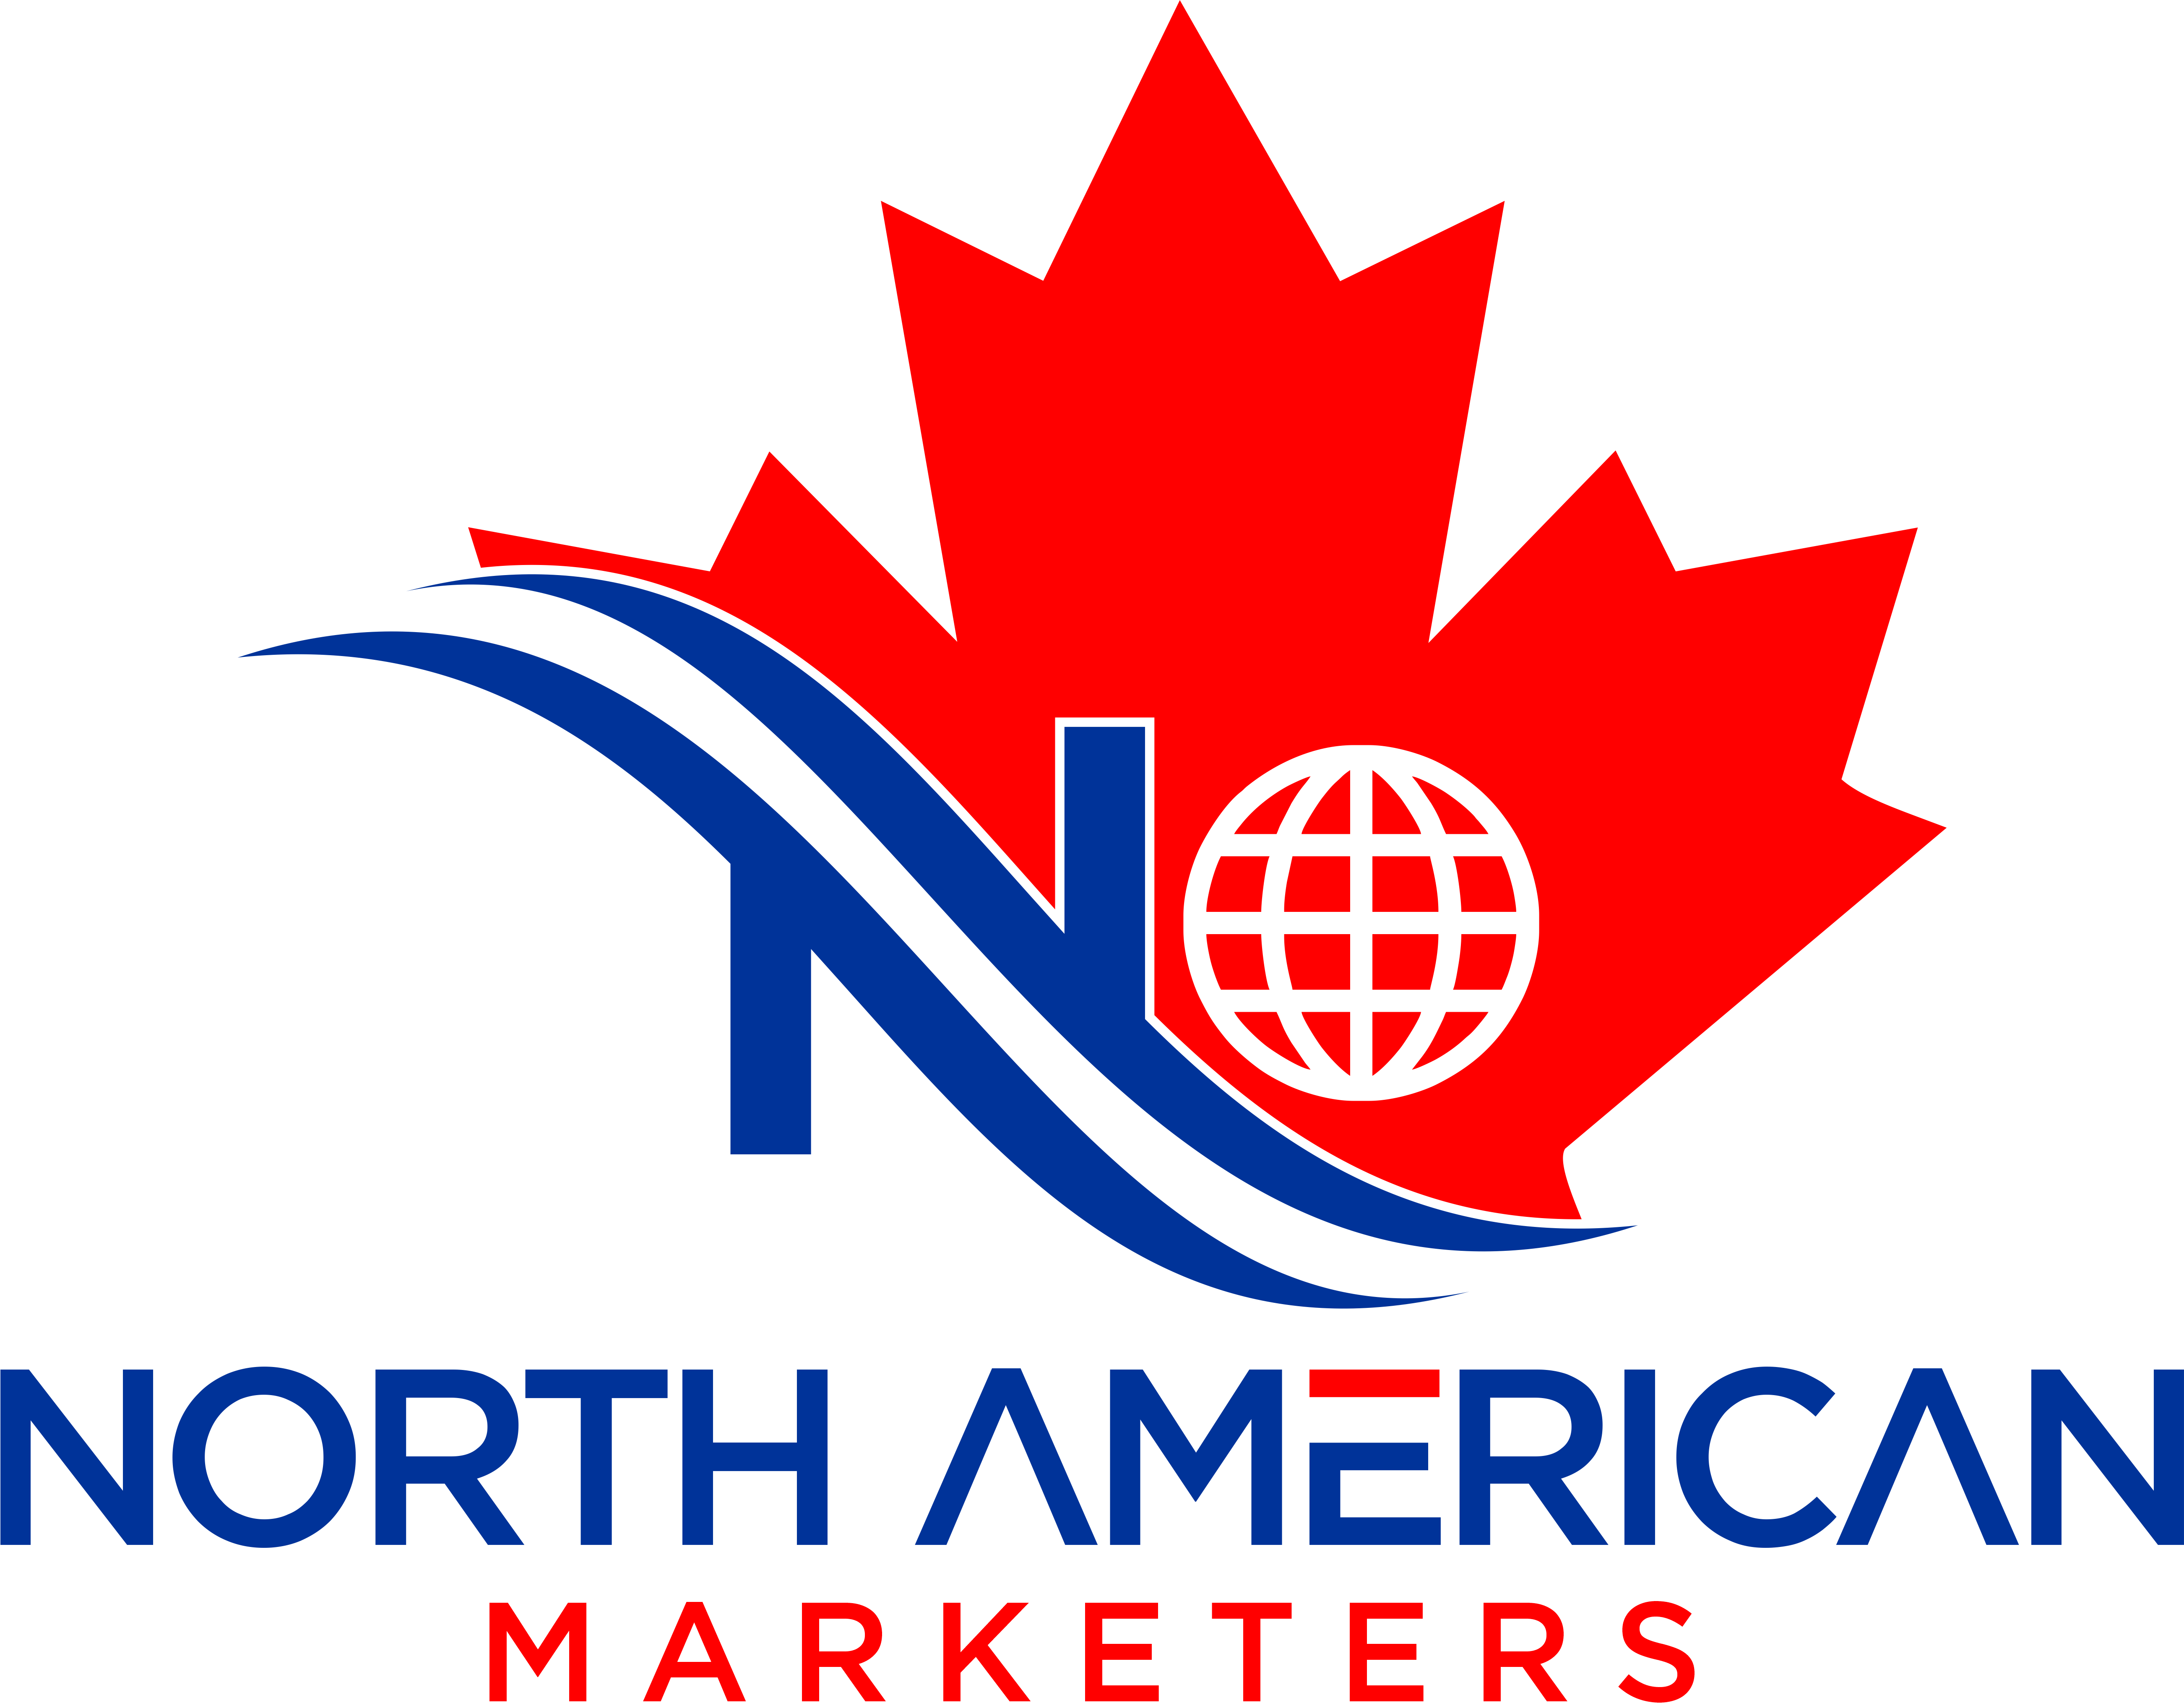 North American Marketers